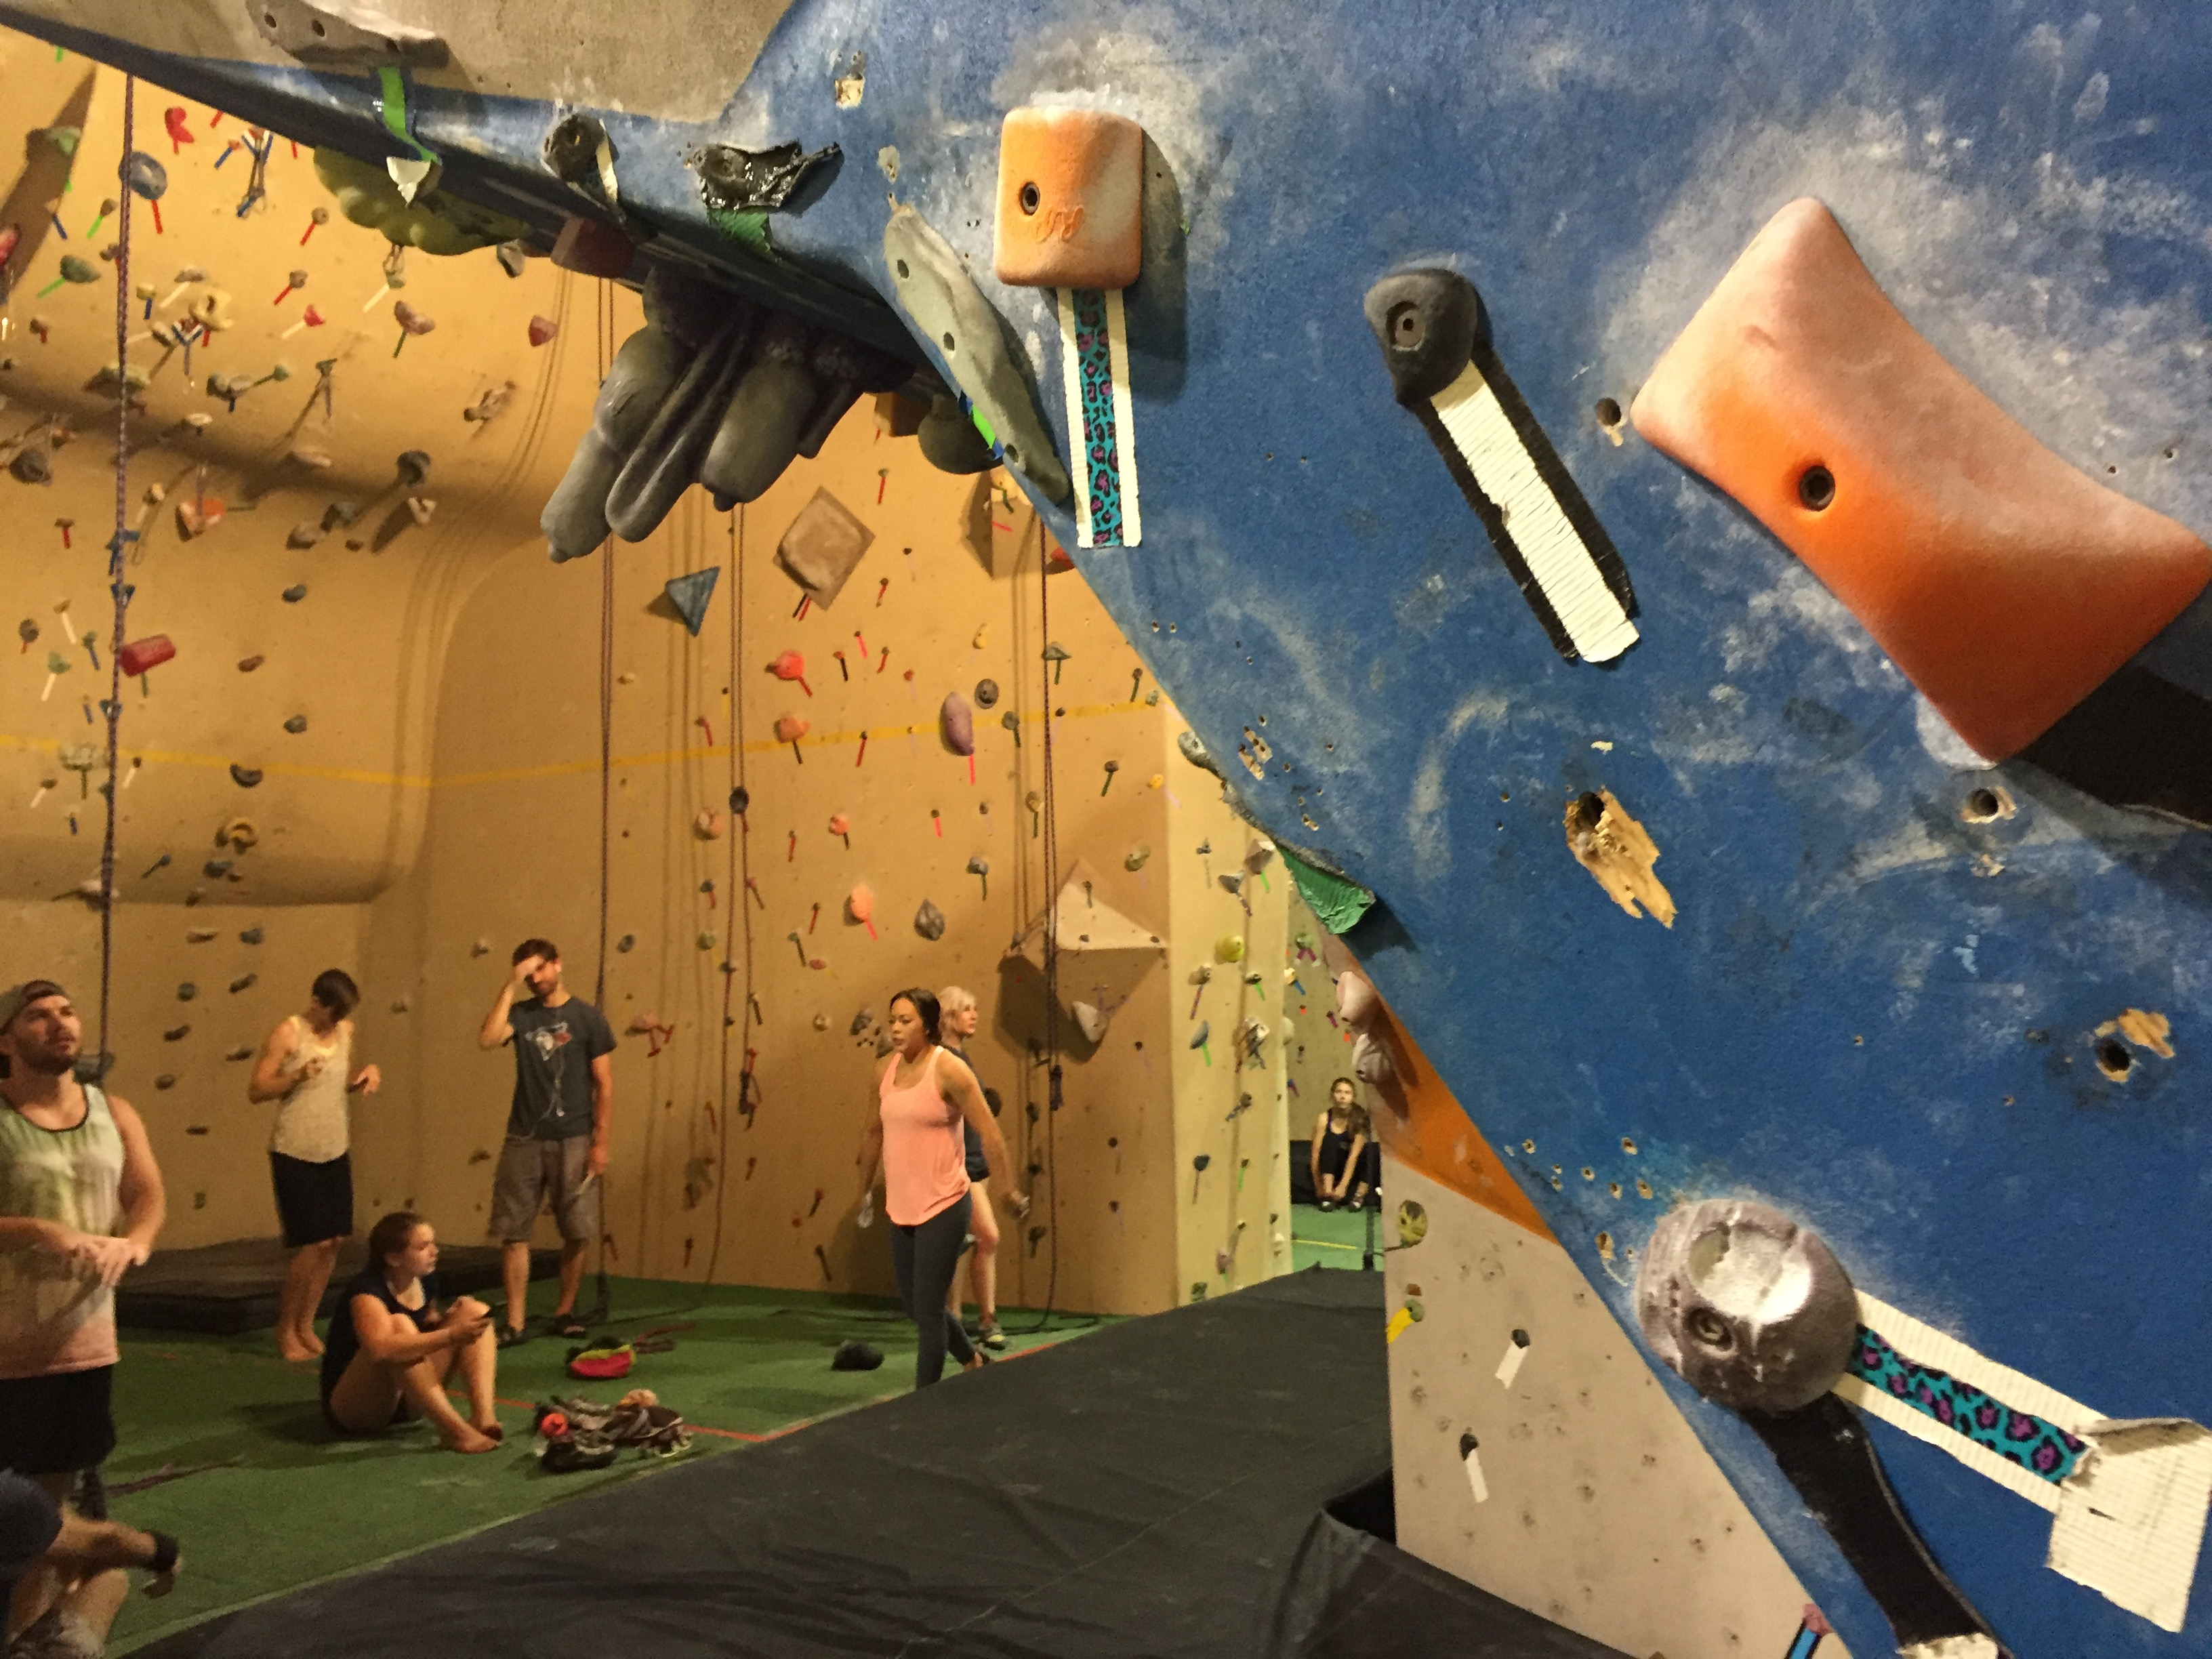 Project Climbing Center Abbotsford with #ExploreBCbyBus